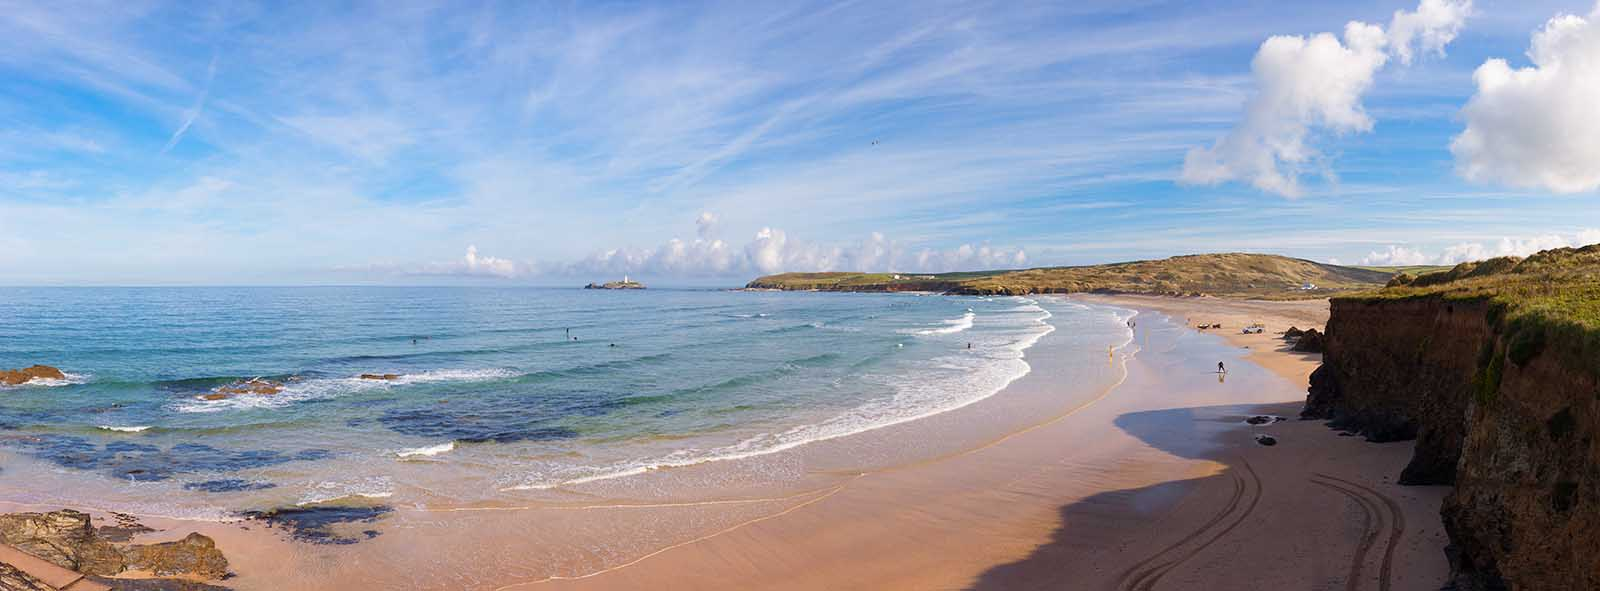 [Godrevy - Gwithian Beach Panorama, with Lighthouse]